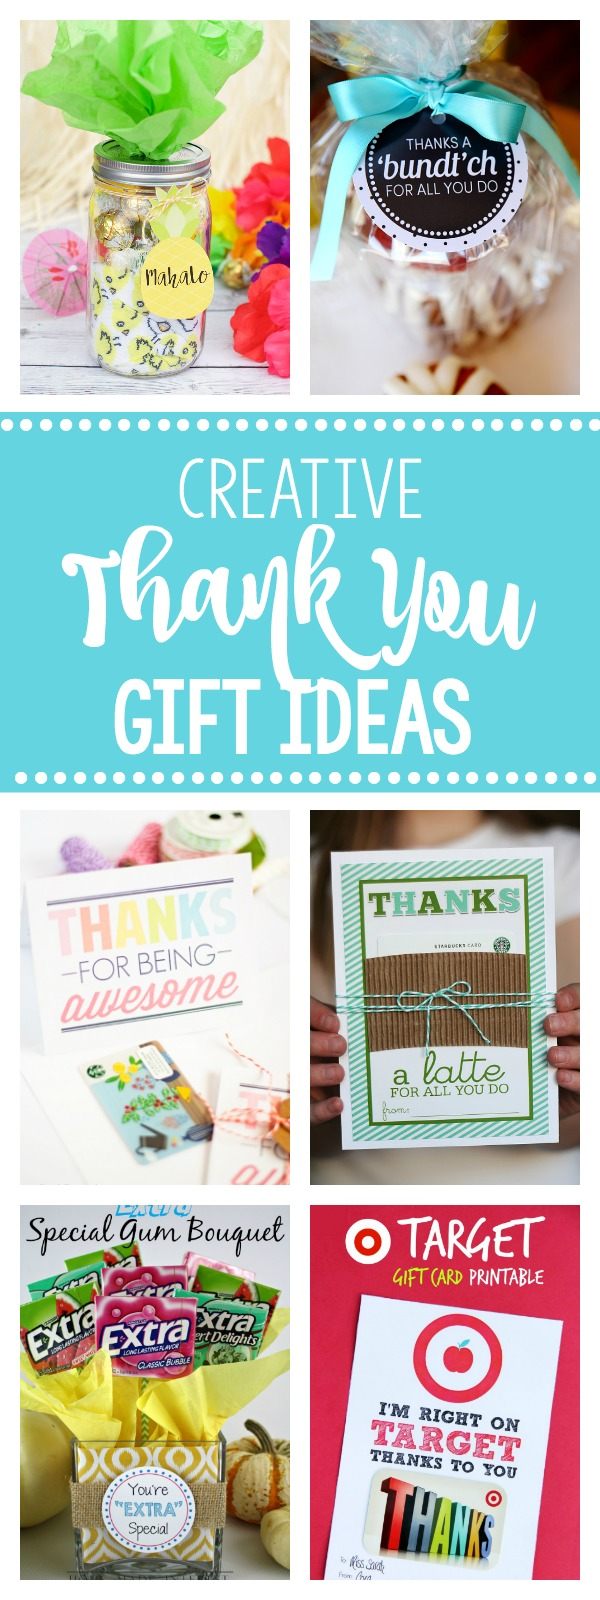 25 Creative & Unique Thank You Gift Ideas-Fun & Creative Ways to Say Thanks to anyone! Whether it's a teacher, a friend, a coworker or anyone you need to thank, these thank you gifts are perfect for it! #gifts #giftideas #thankyou